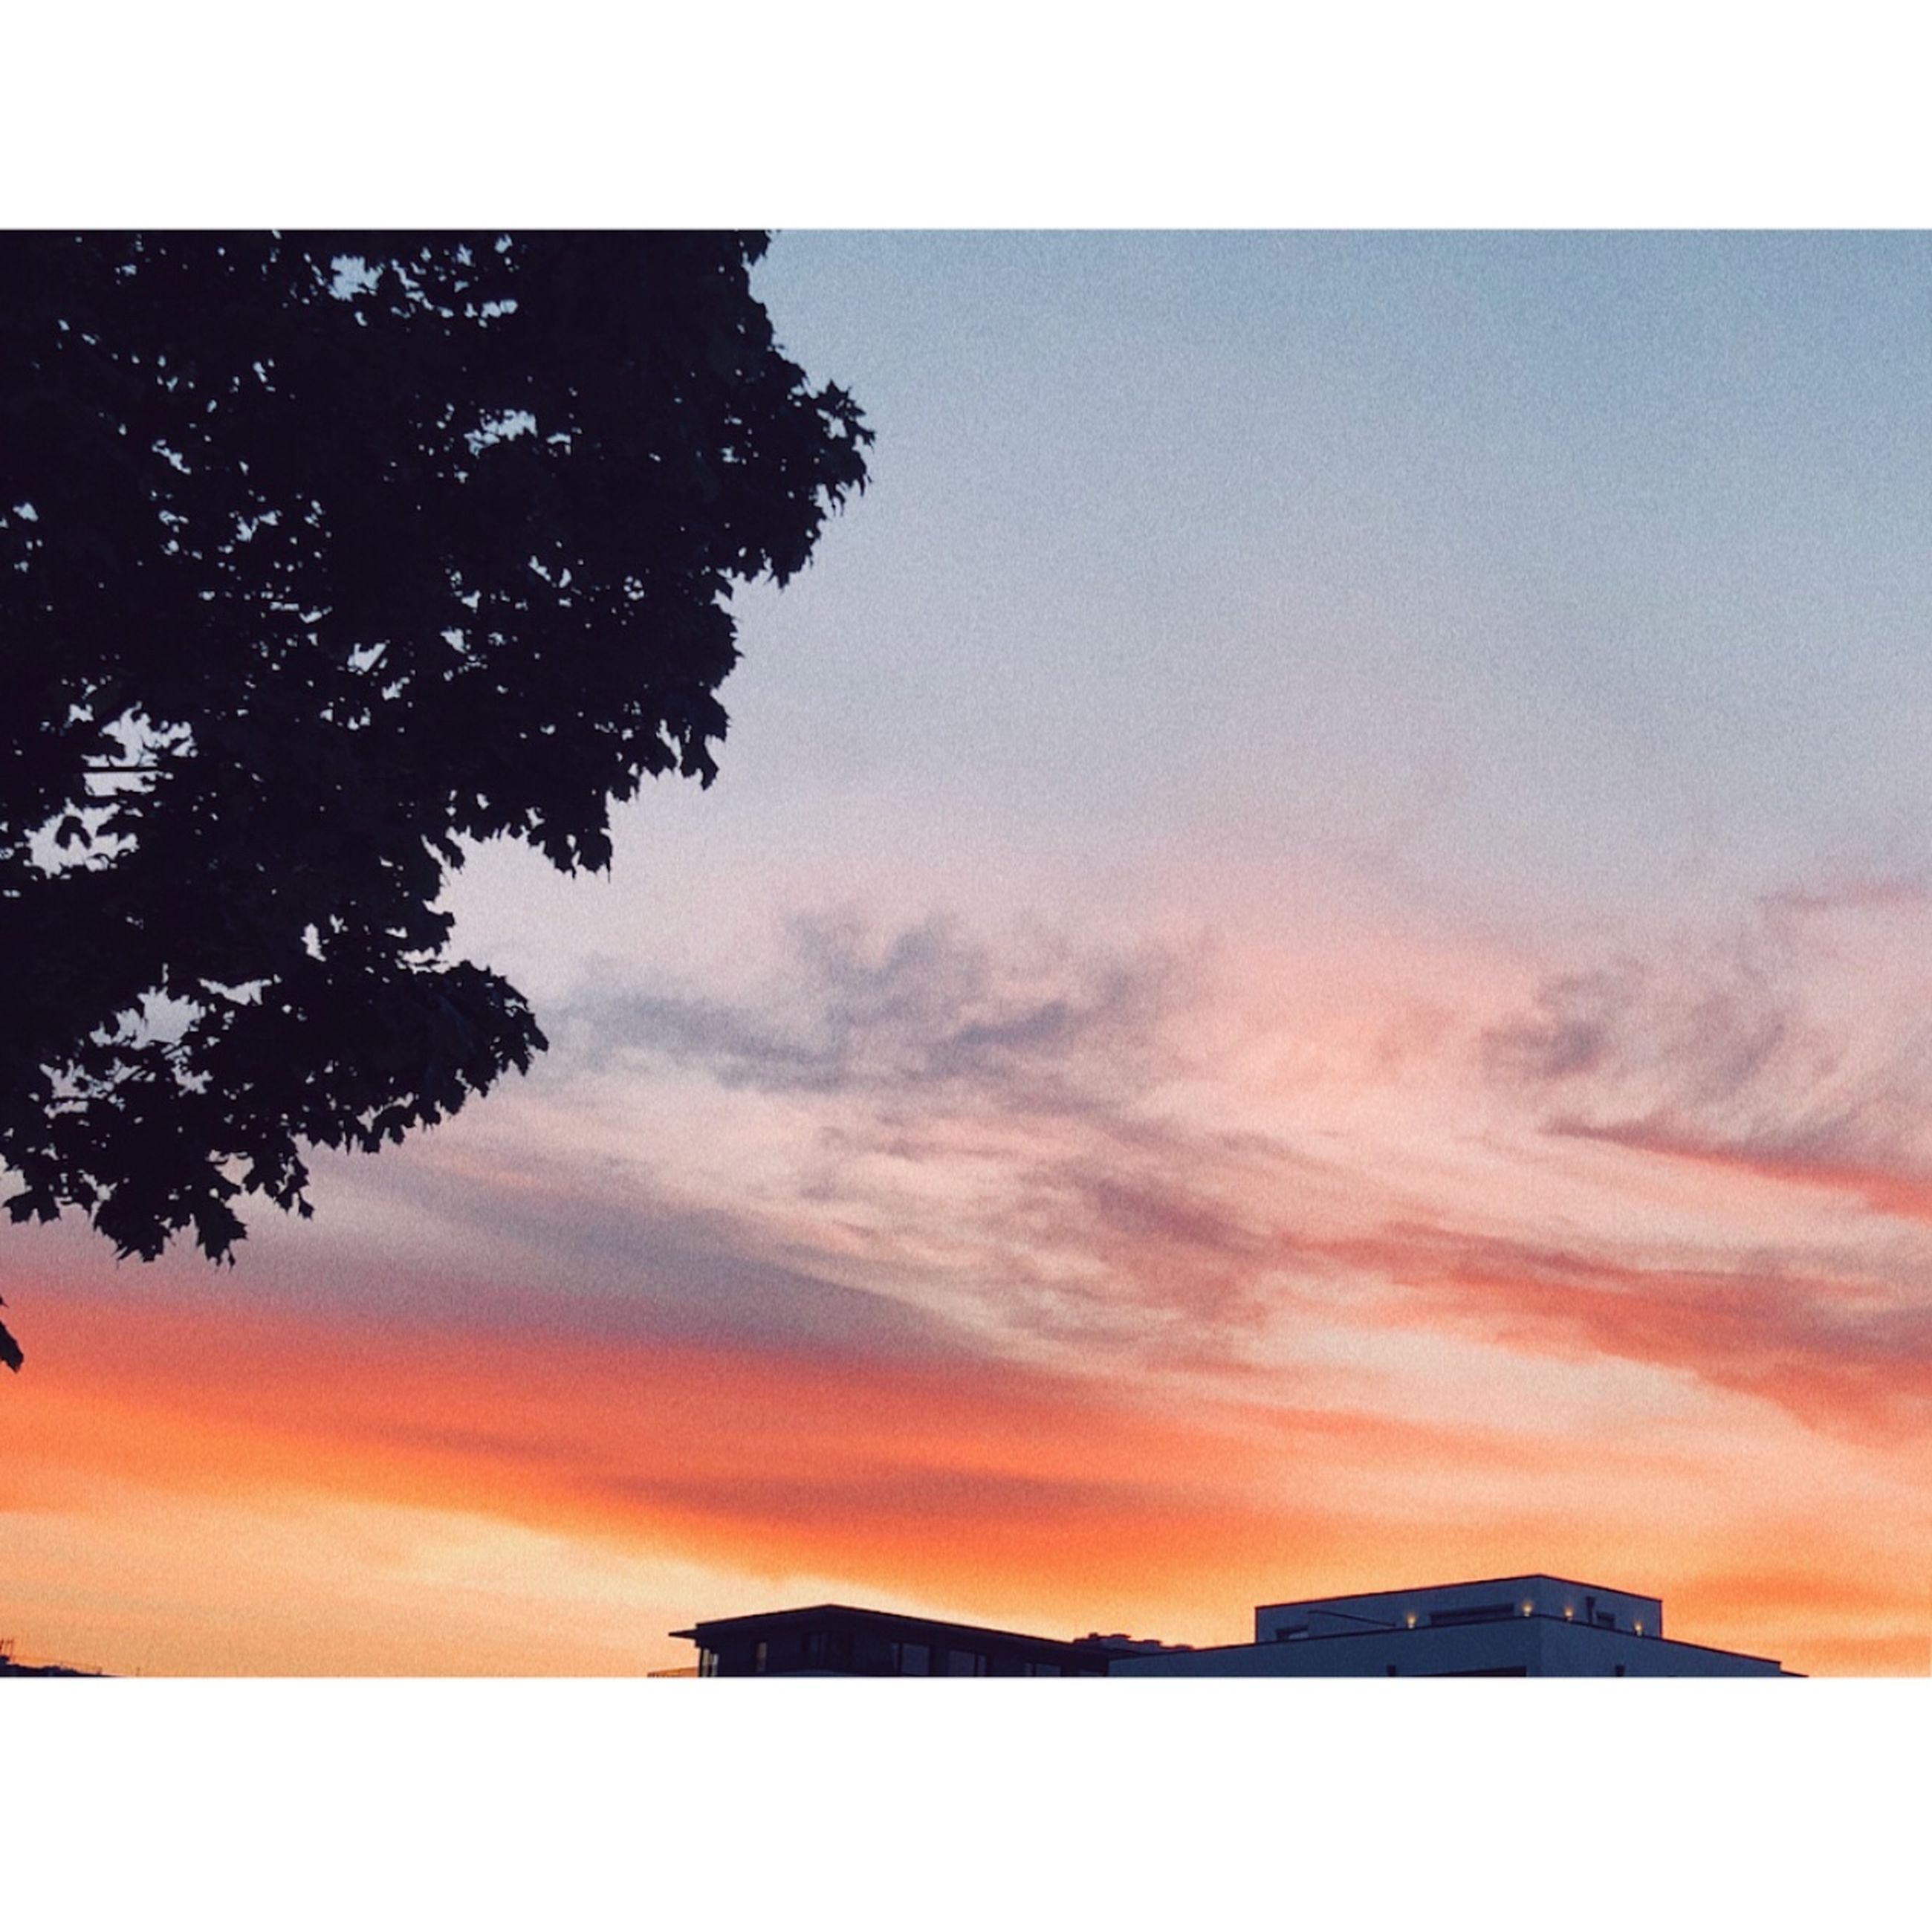 sky, sunset, cloud - sky, tree, nature, plant, no people, beauty in nature, silhouette, orange color, architecture, scenics - nature, building exterior, built structure, outdoors, transfer print, auto post production filter, water, tranquility, tranquil scene